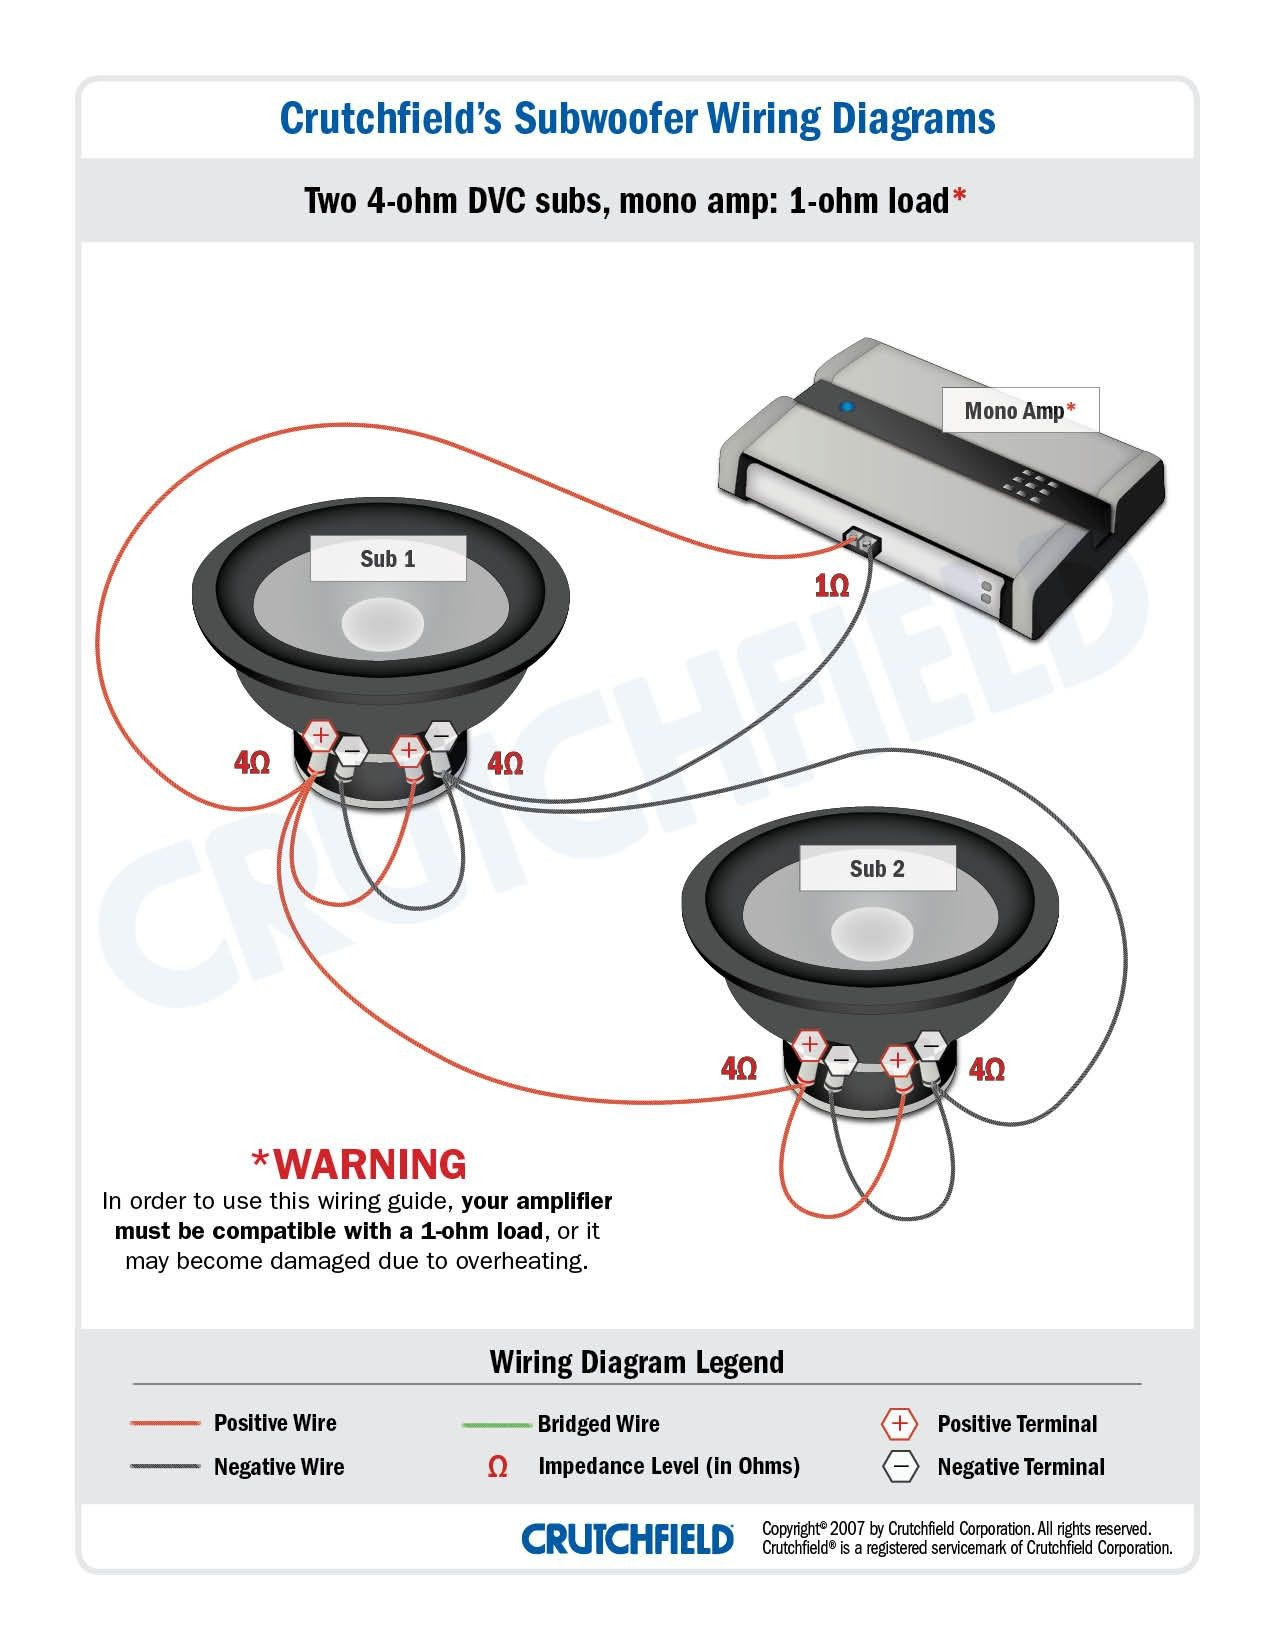 Wiring Diagram for Car Amplifier and Subwoofer 2 Dvc 4 Ohm Mono Low Imp 1275—1650 Audio Pinterest Of Wiring Diagram for Car Amplifier and Subwoofer